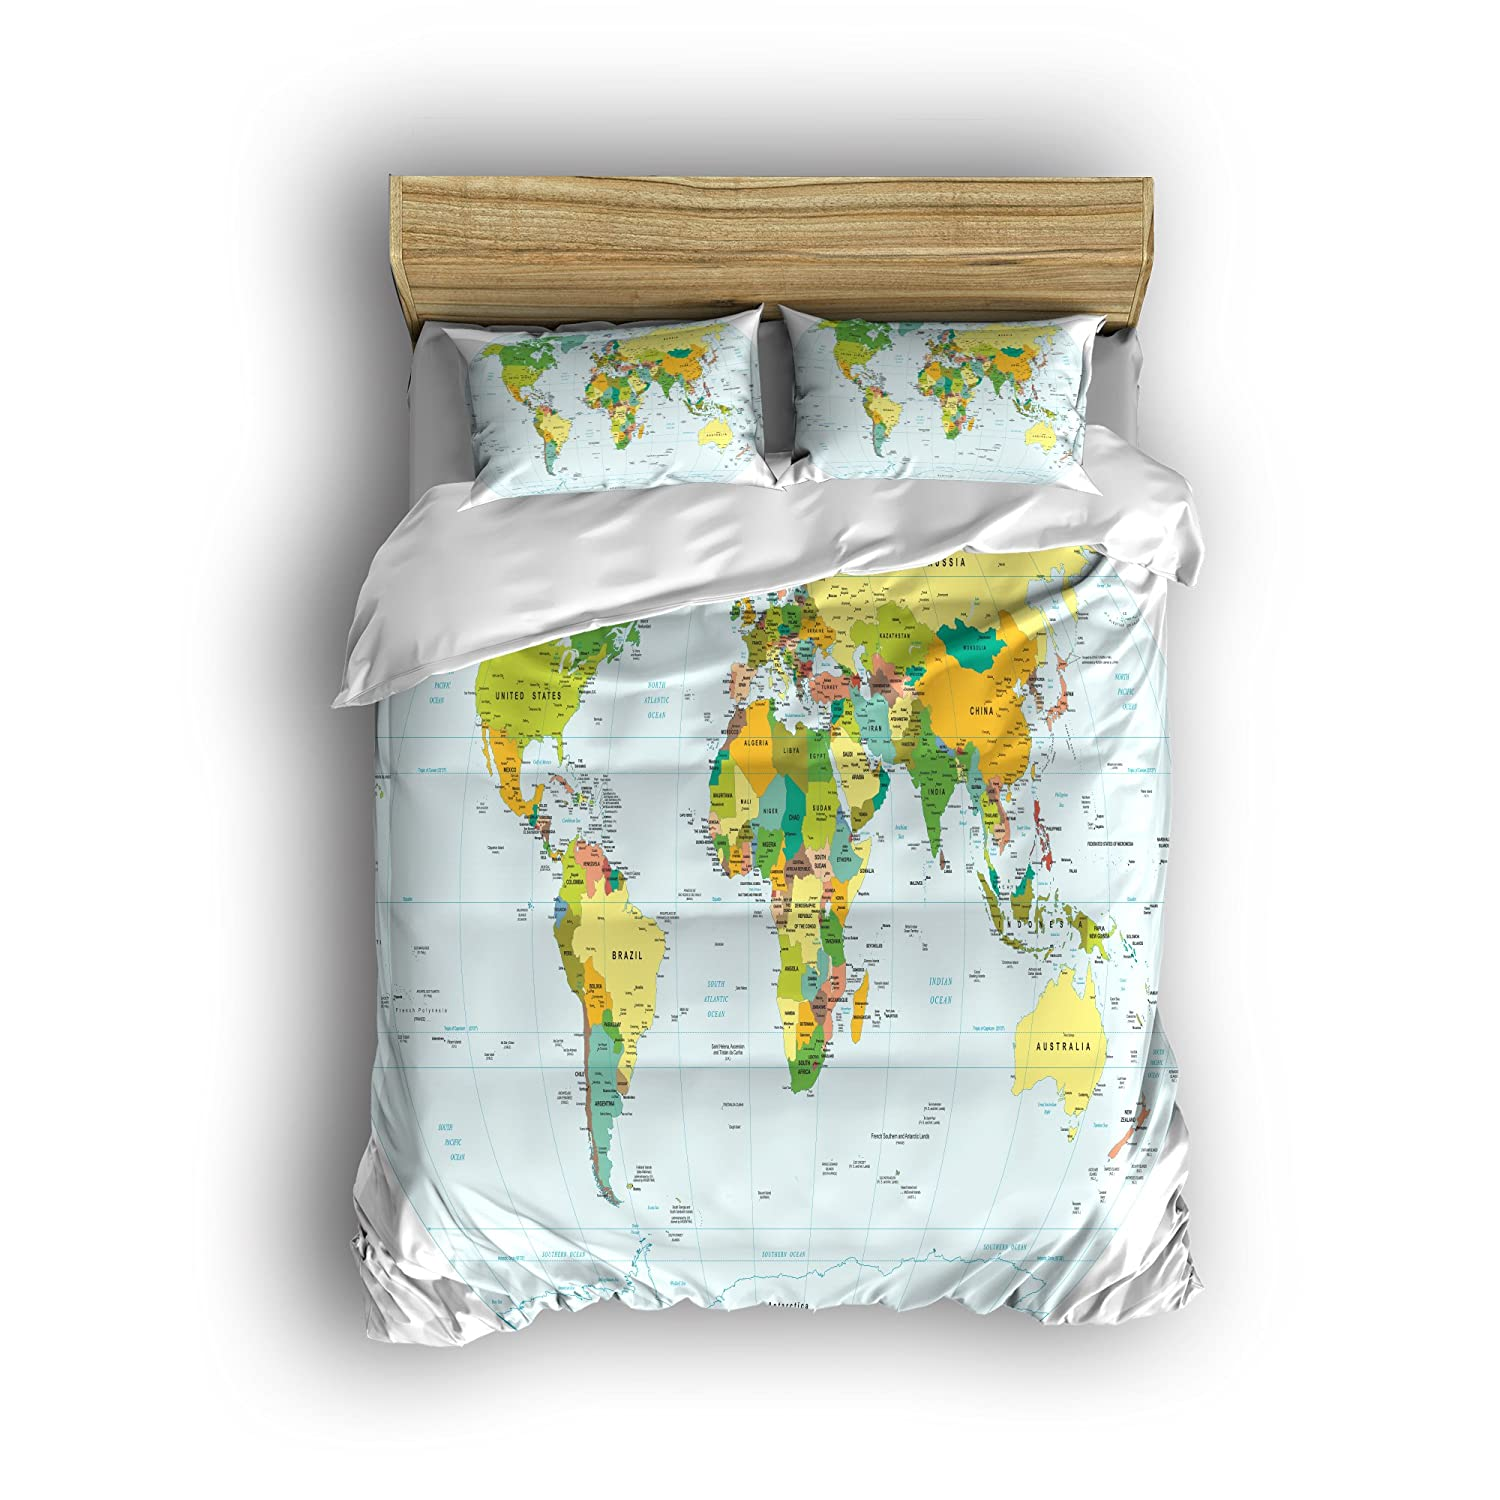 Amazon.com: 4pc World Map Reversible Duvet Cover Set with 2 ...